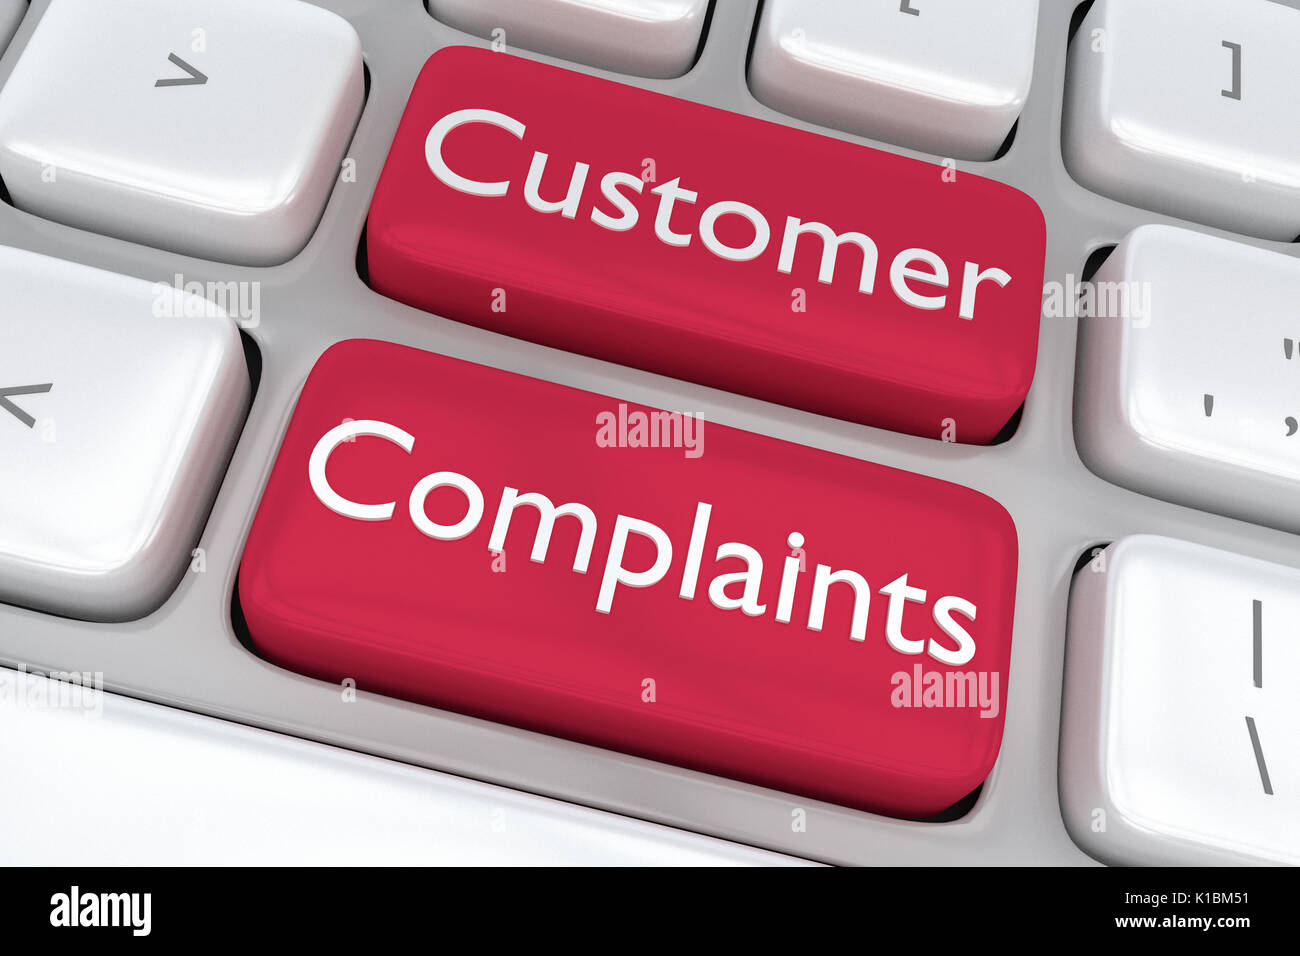 Render illustration of computer keyboard with the print Customer Complaints on two adjacent red buttons - Stock Image